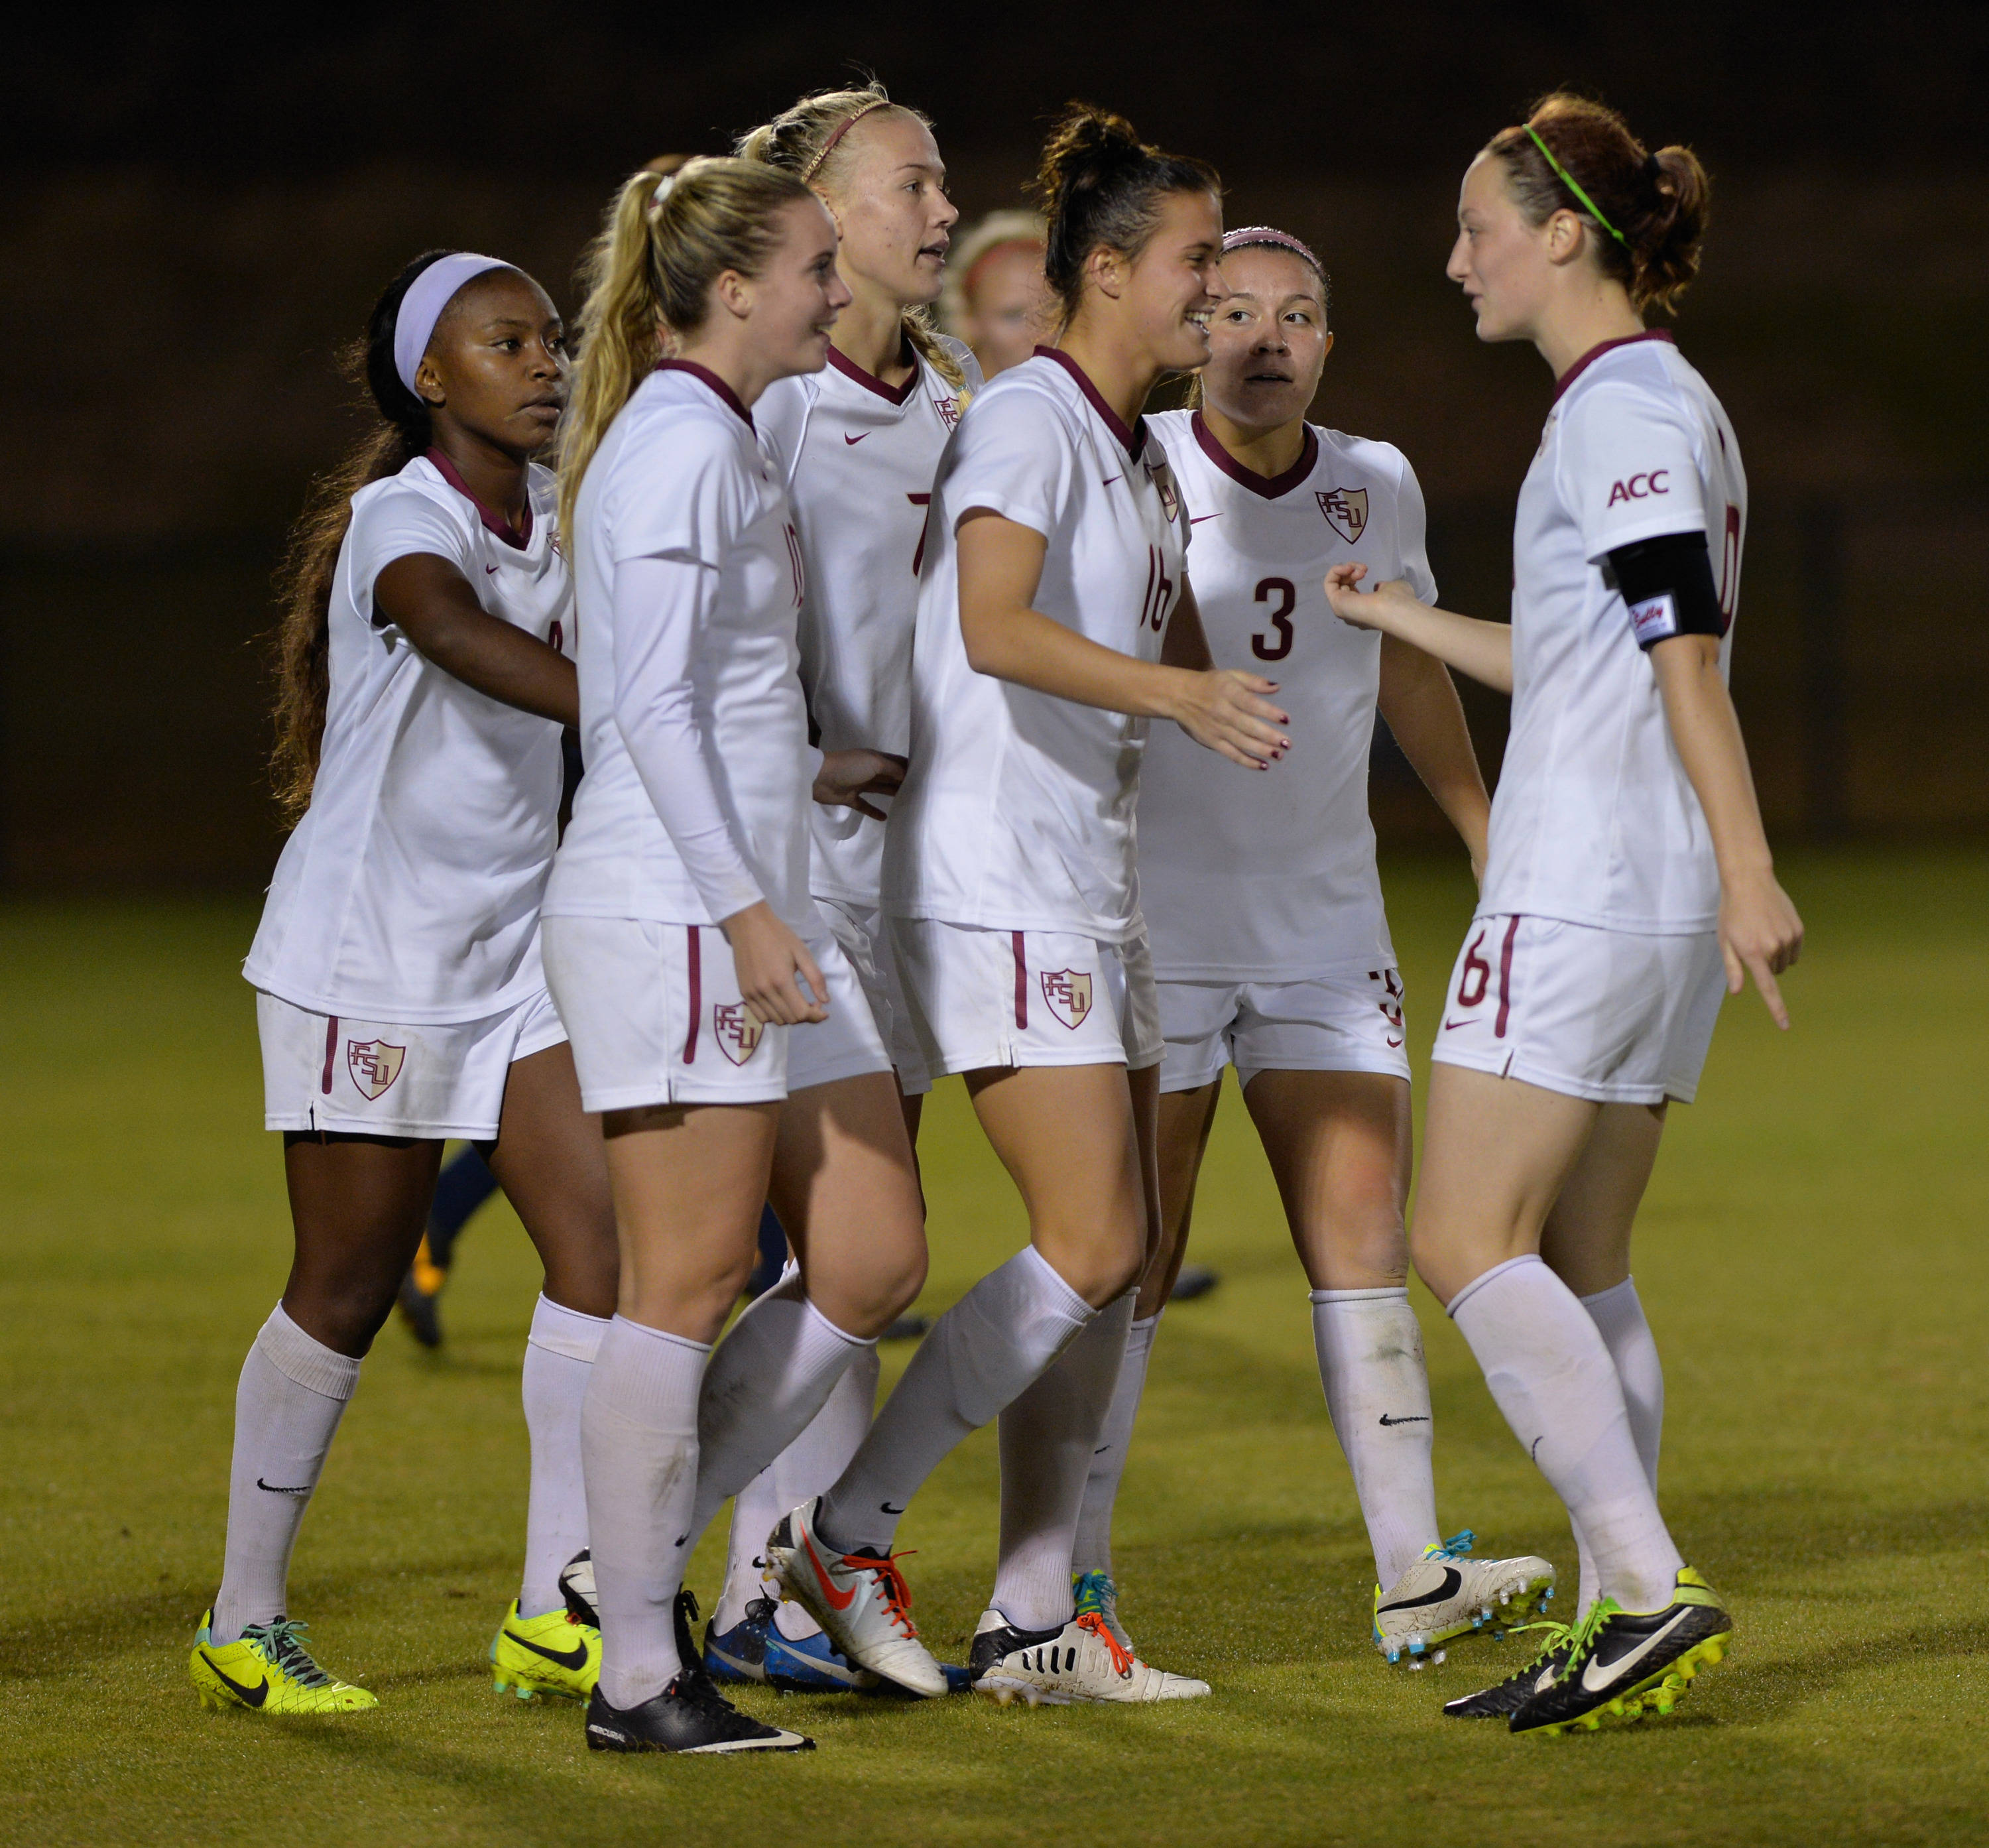 The Seminoles celebrate after scoring a goal Friday night